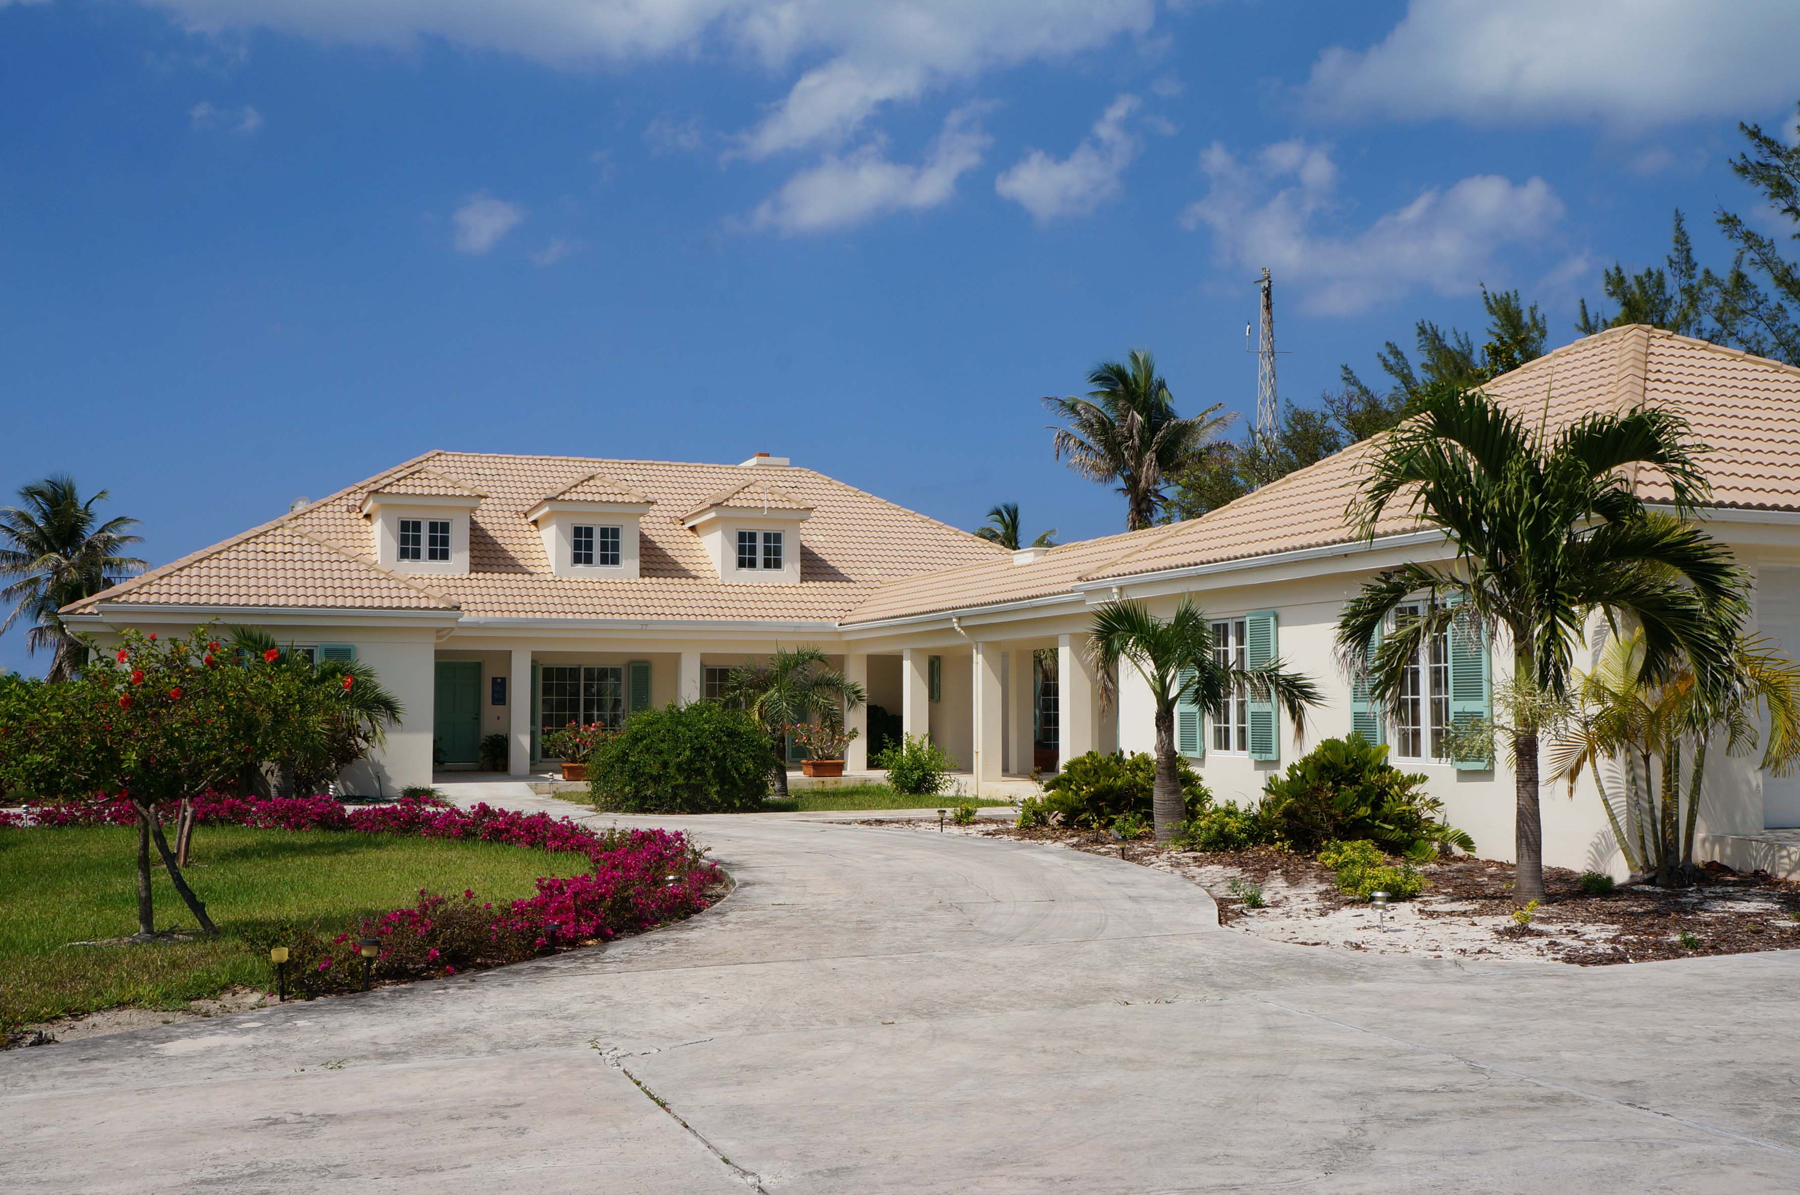 Single Family Home for Sale at Blue Vue - Beachfront Home Spanish Wells, Eleuthera Bahamas